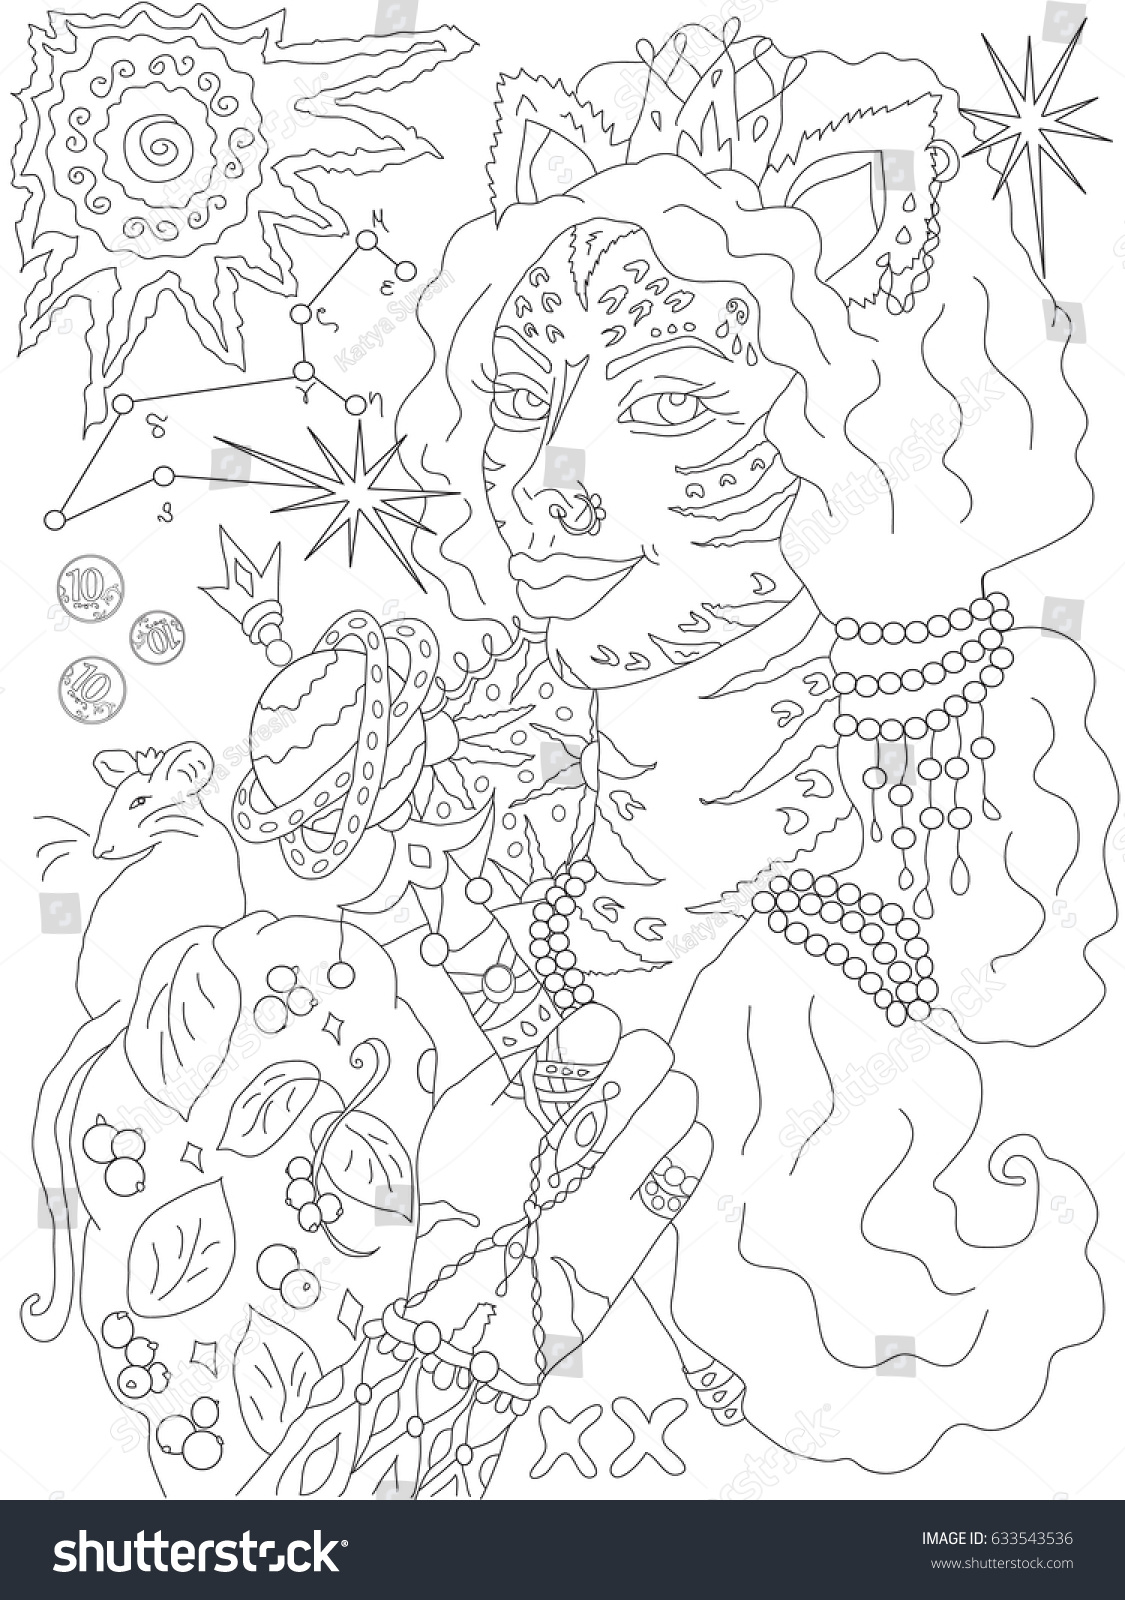 Uncategorized Constellation Coloring Pages constellation coloring pages leo star from indian vedas astrology page pages